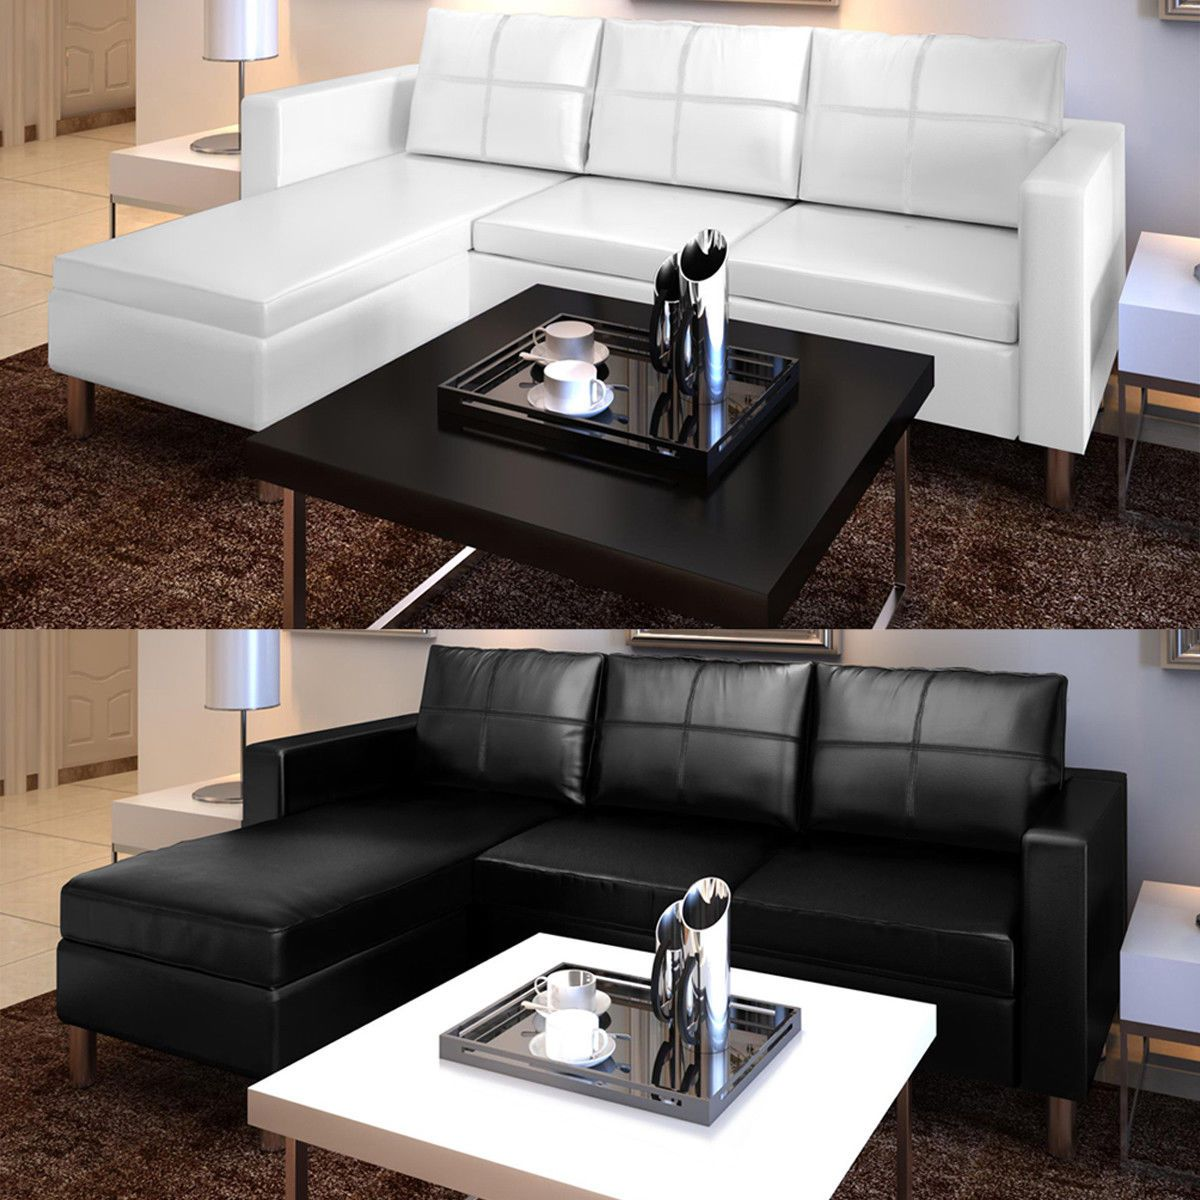 Seats And Sofas Genk Artificial Leather Sectional Sofa Configurable Chaise Lounge Couch